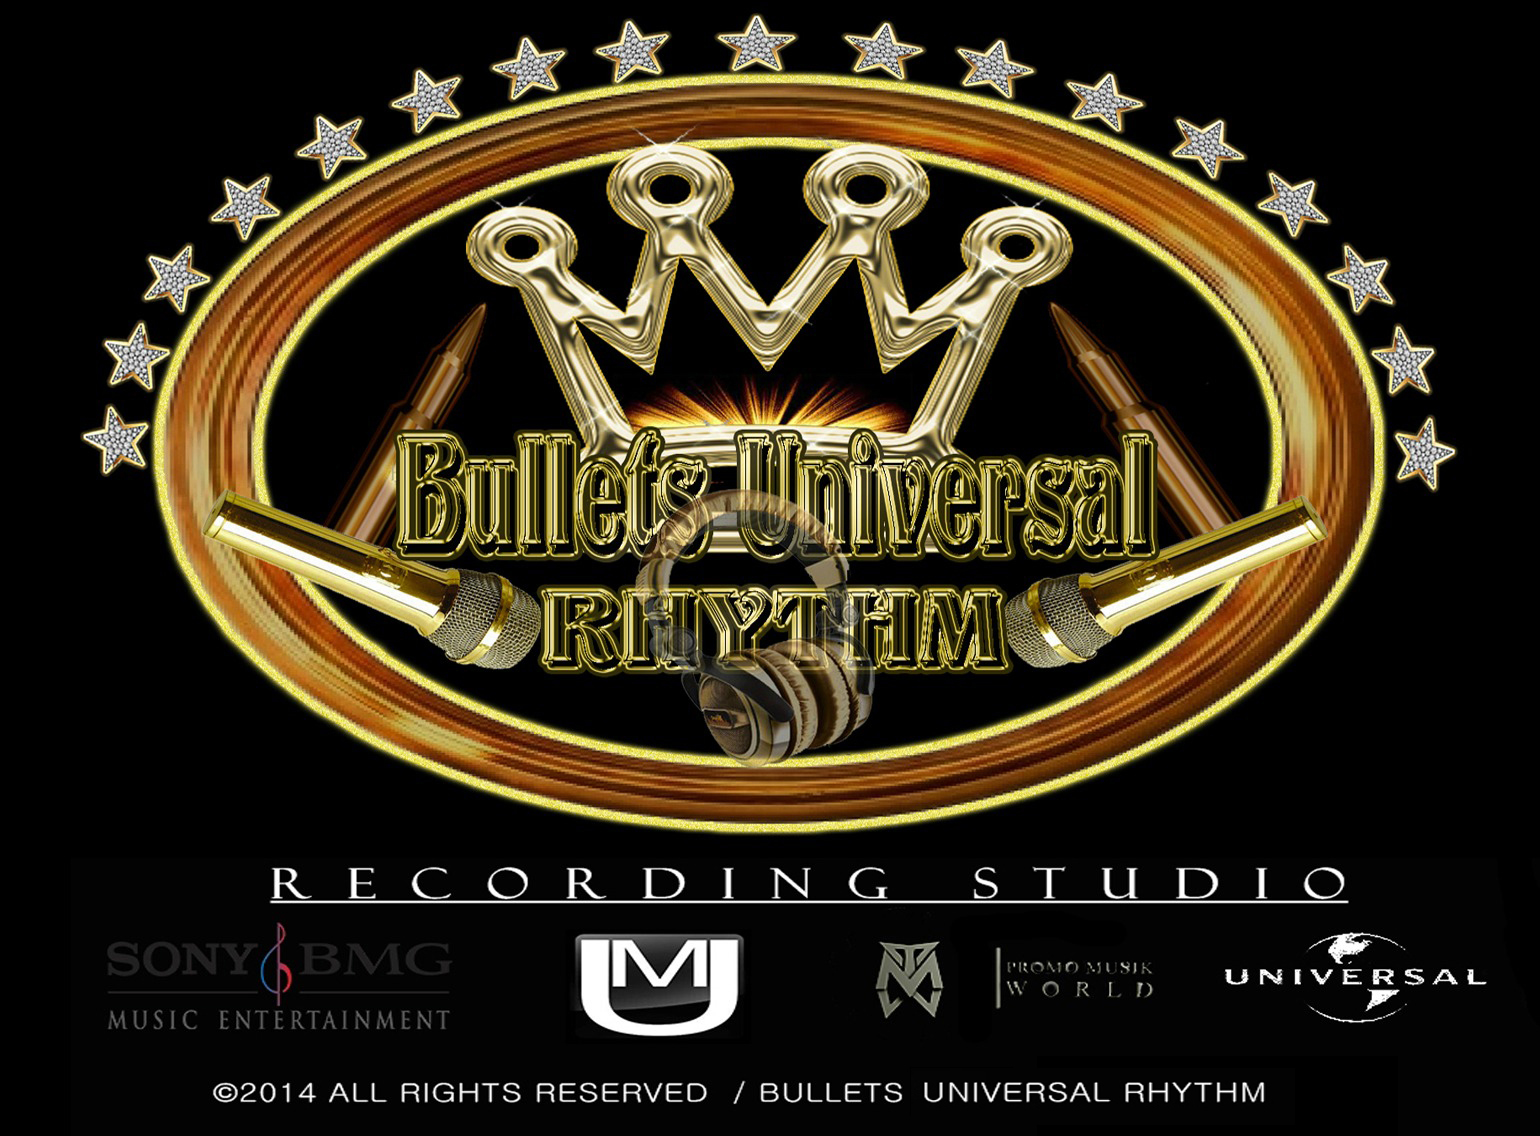 Bullets Universal Rhythm- Recording Studio (All Rights Reserved)